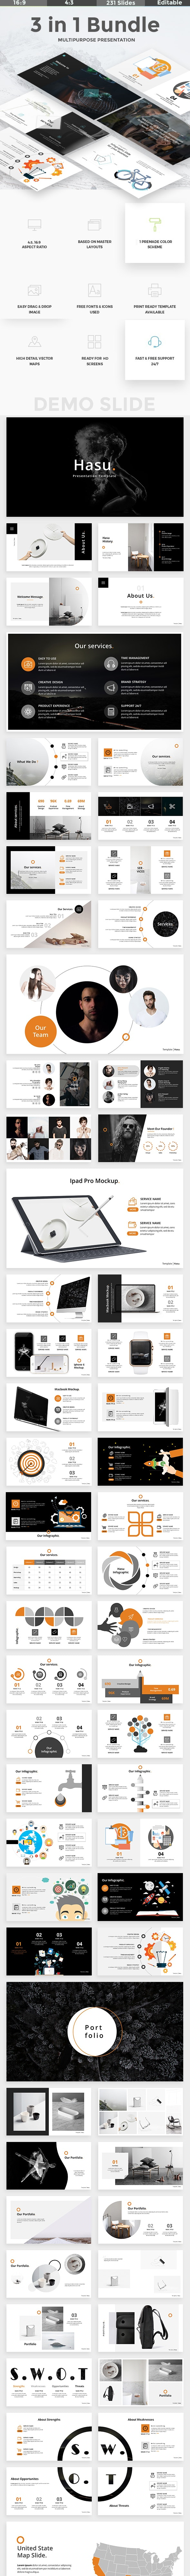 3 in 1 Bundle Creative Powerpoint Template - Creative PowerPoint Templates